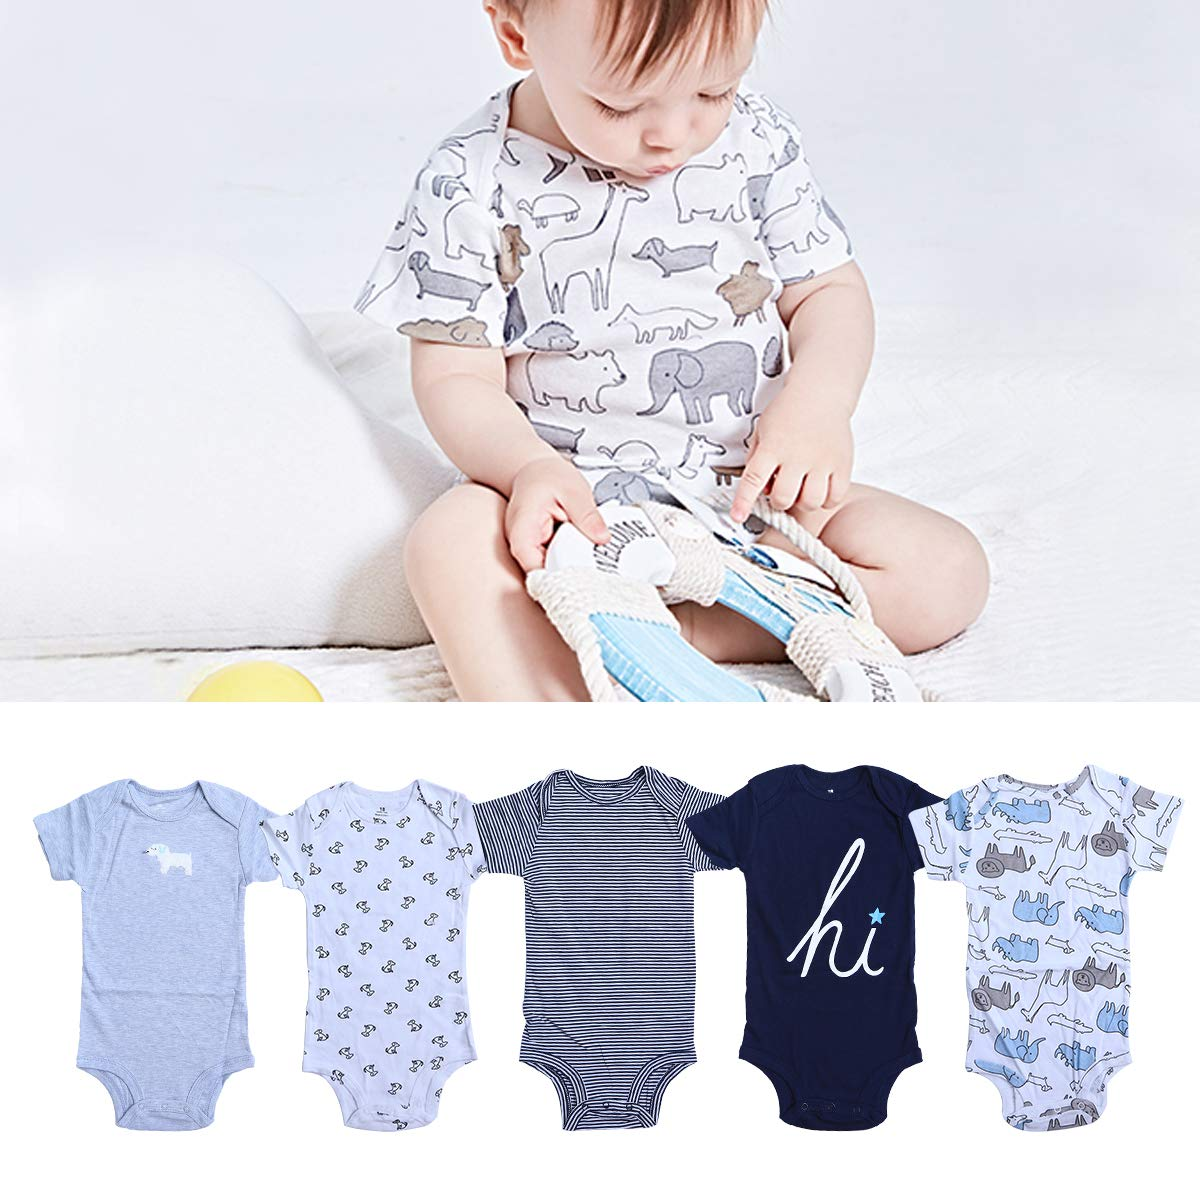 5pcs Baby Romper Cotton Short Sleeve Triangle Romper Bodysuit Outfits Infant Toddler Clothes for Boy Girl 07183 Elephant, 18cm